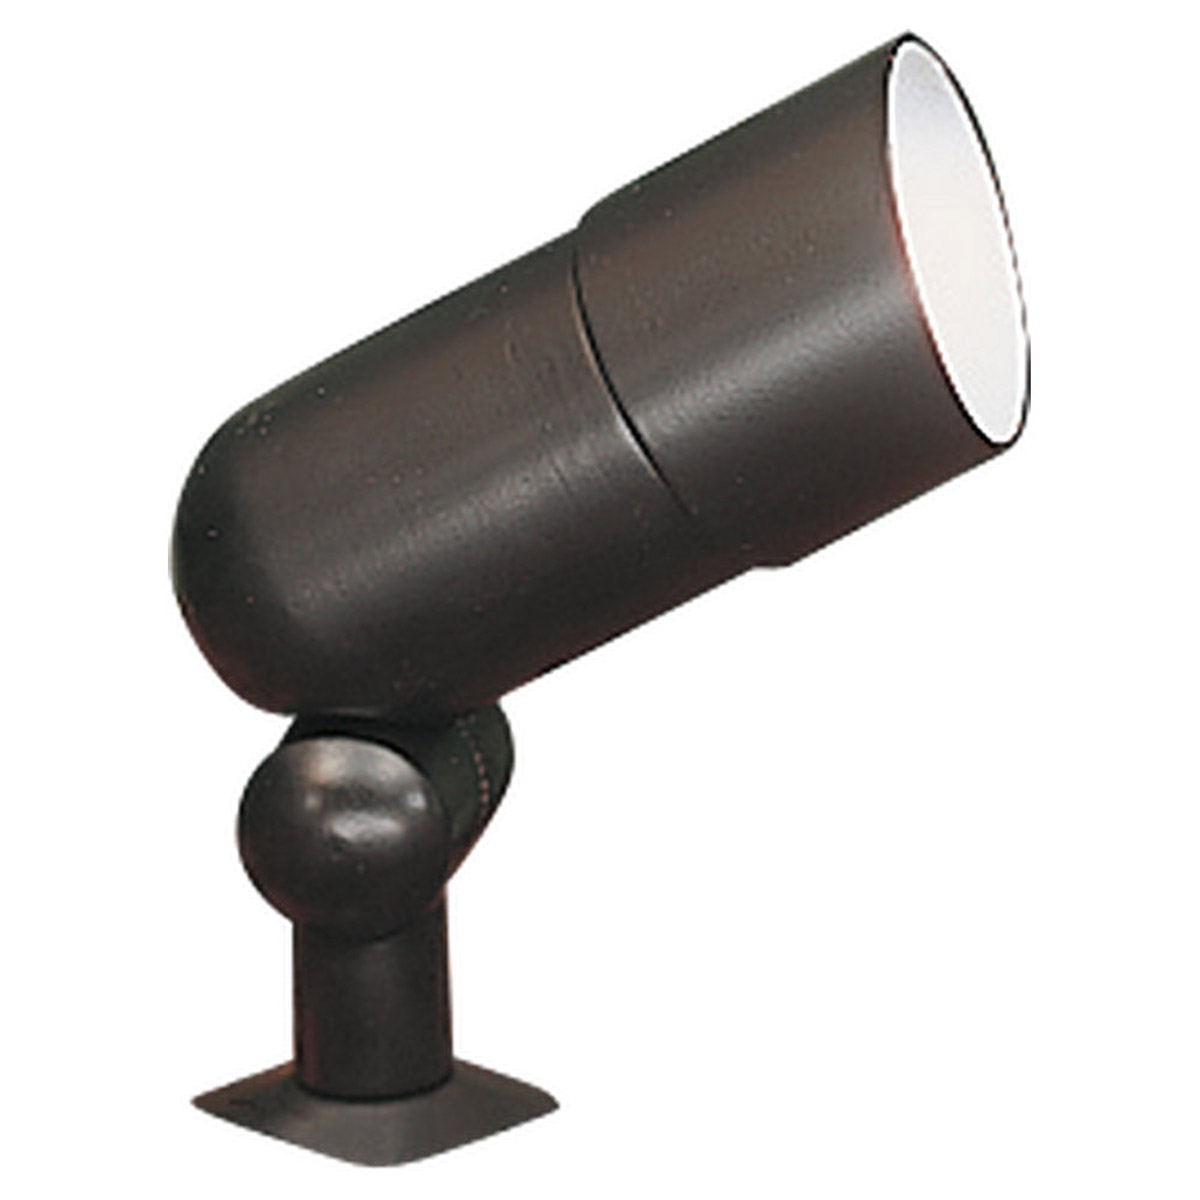 Sea Gull Lighting Ambiance 1 Light Landscape Accent Light in Black 9312-12